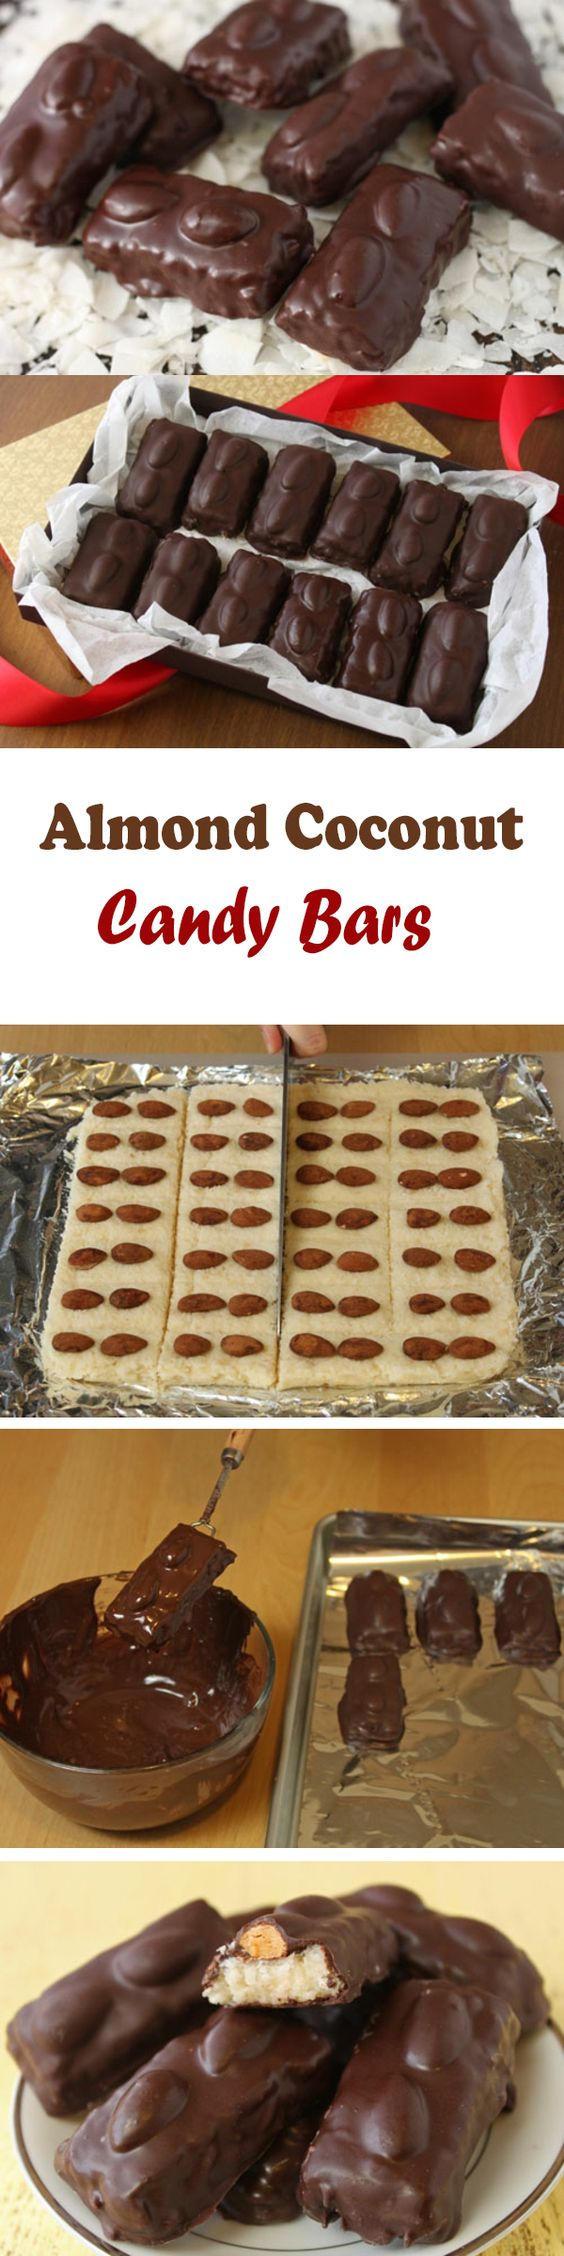 These homemade candy bars, filled with a soft and chewy coconut filling and crunchy toasted almonds, are a delight. You might even say they are a joy. An almond